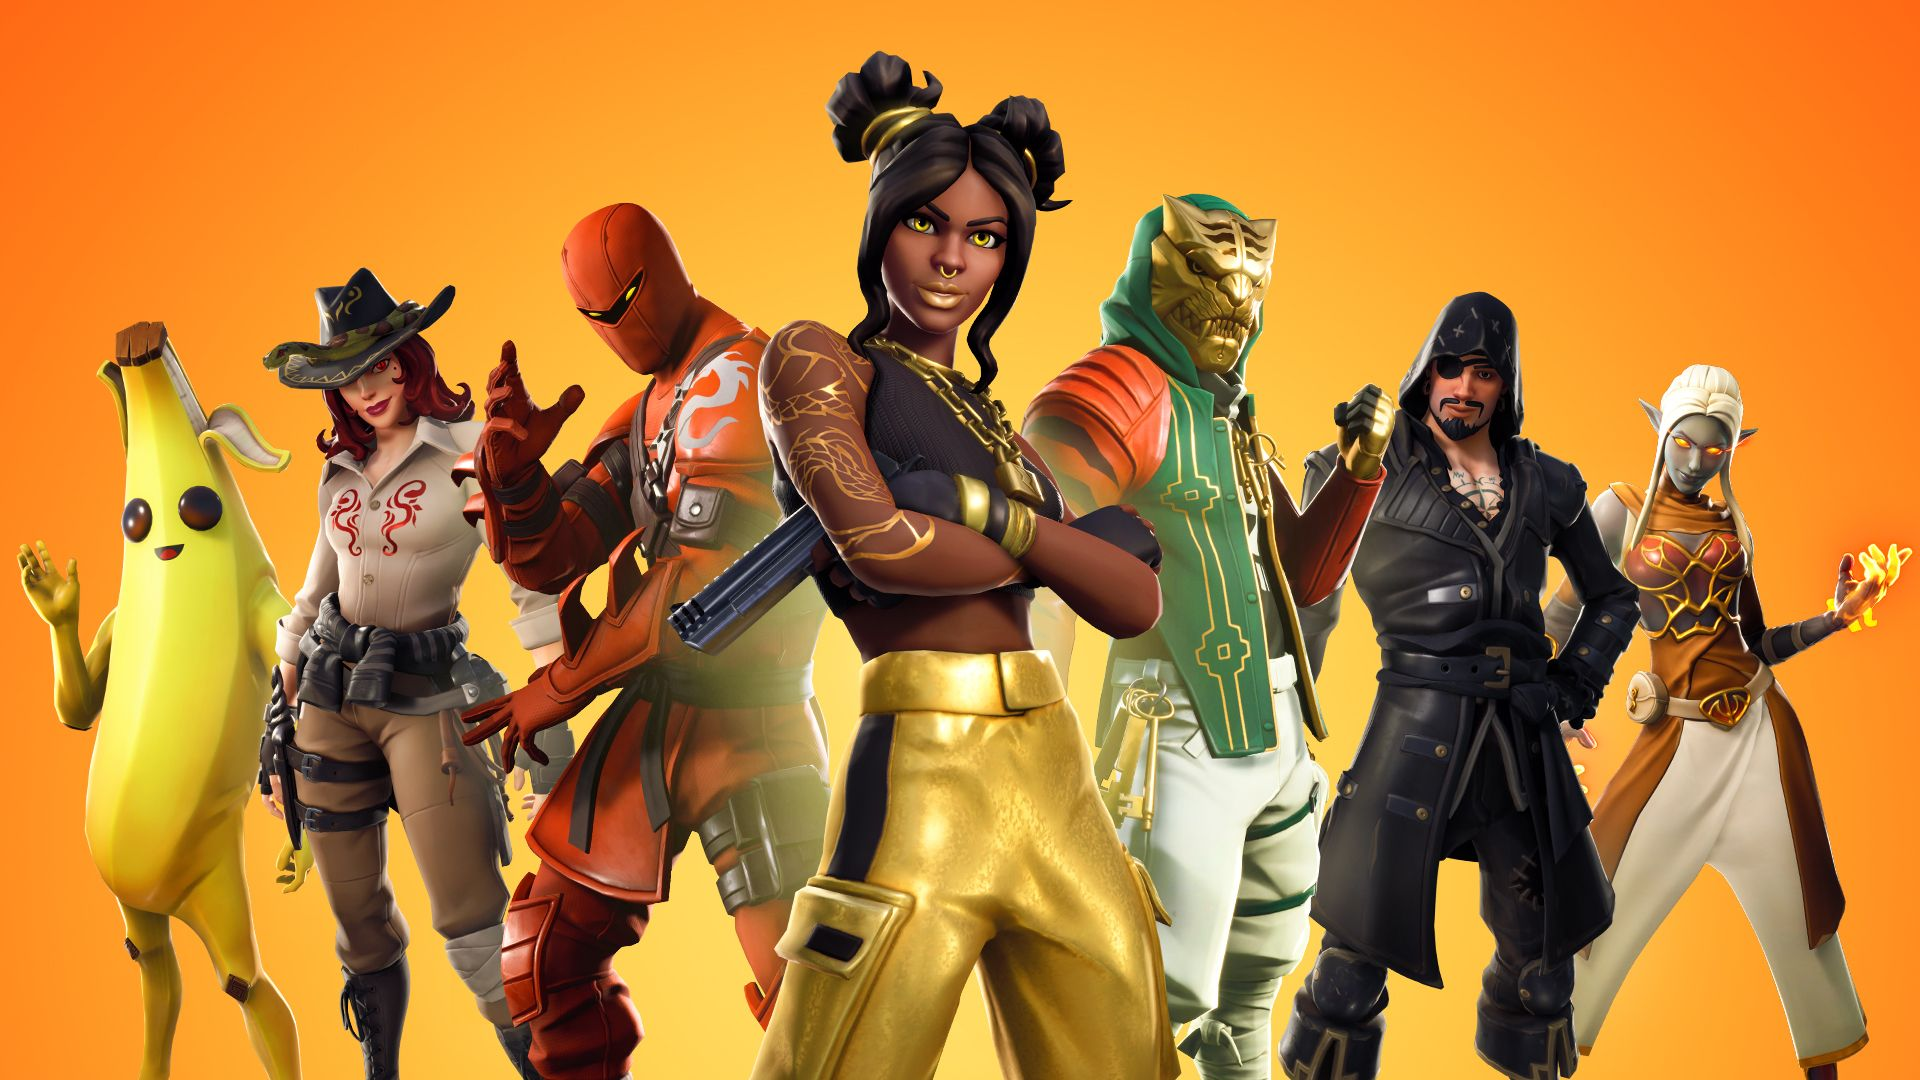 fortnite update 2 12 stabilizes fixes bugs after 8 20 patch notes - mise a jour fortnite 16 mai